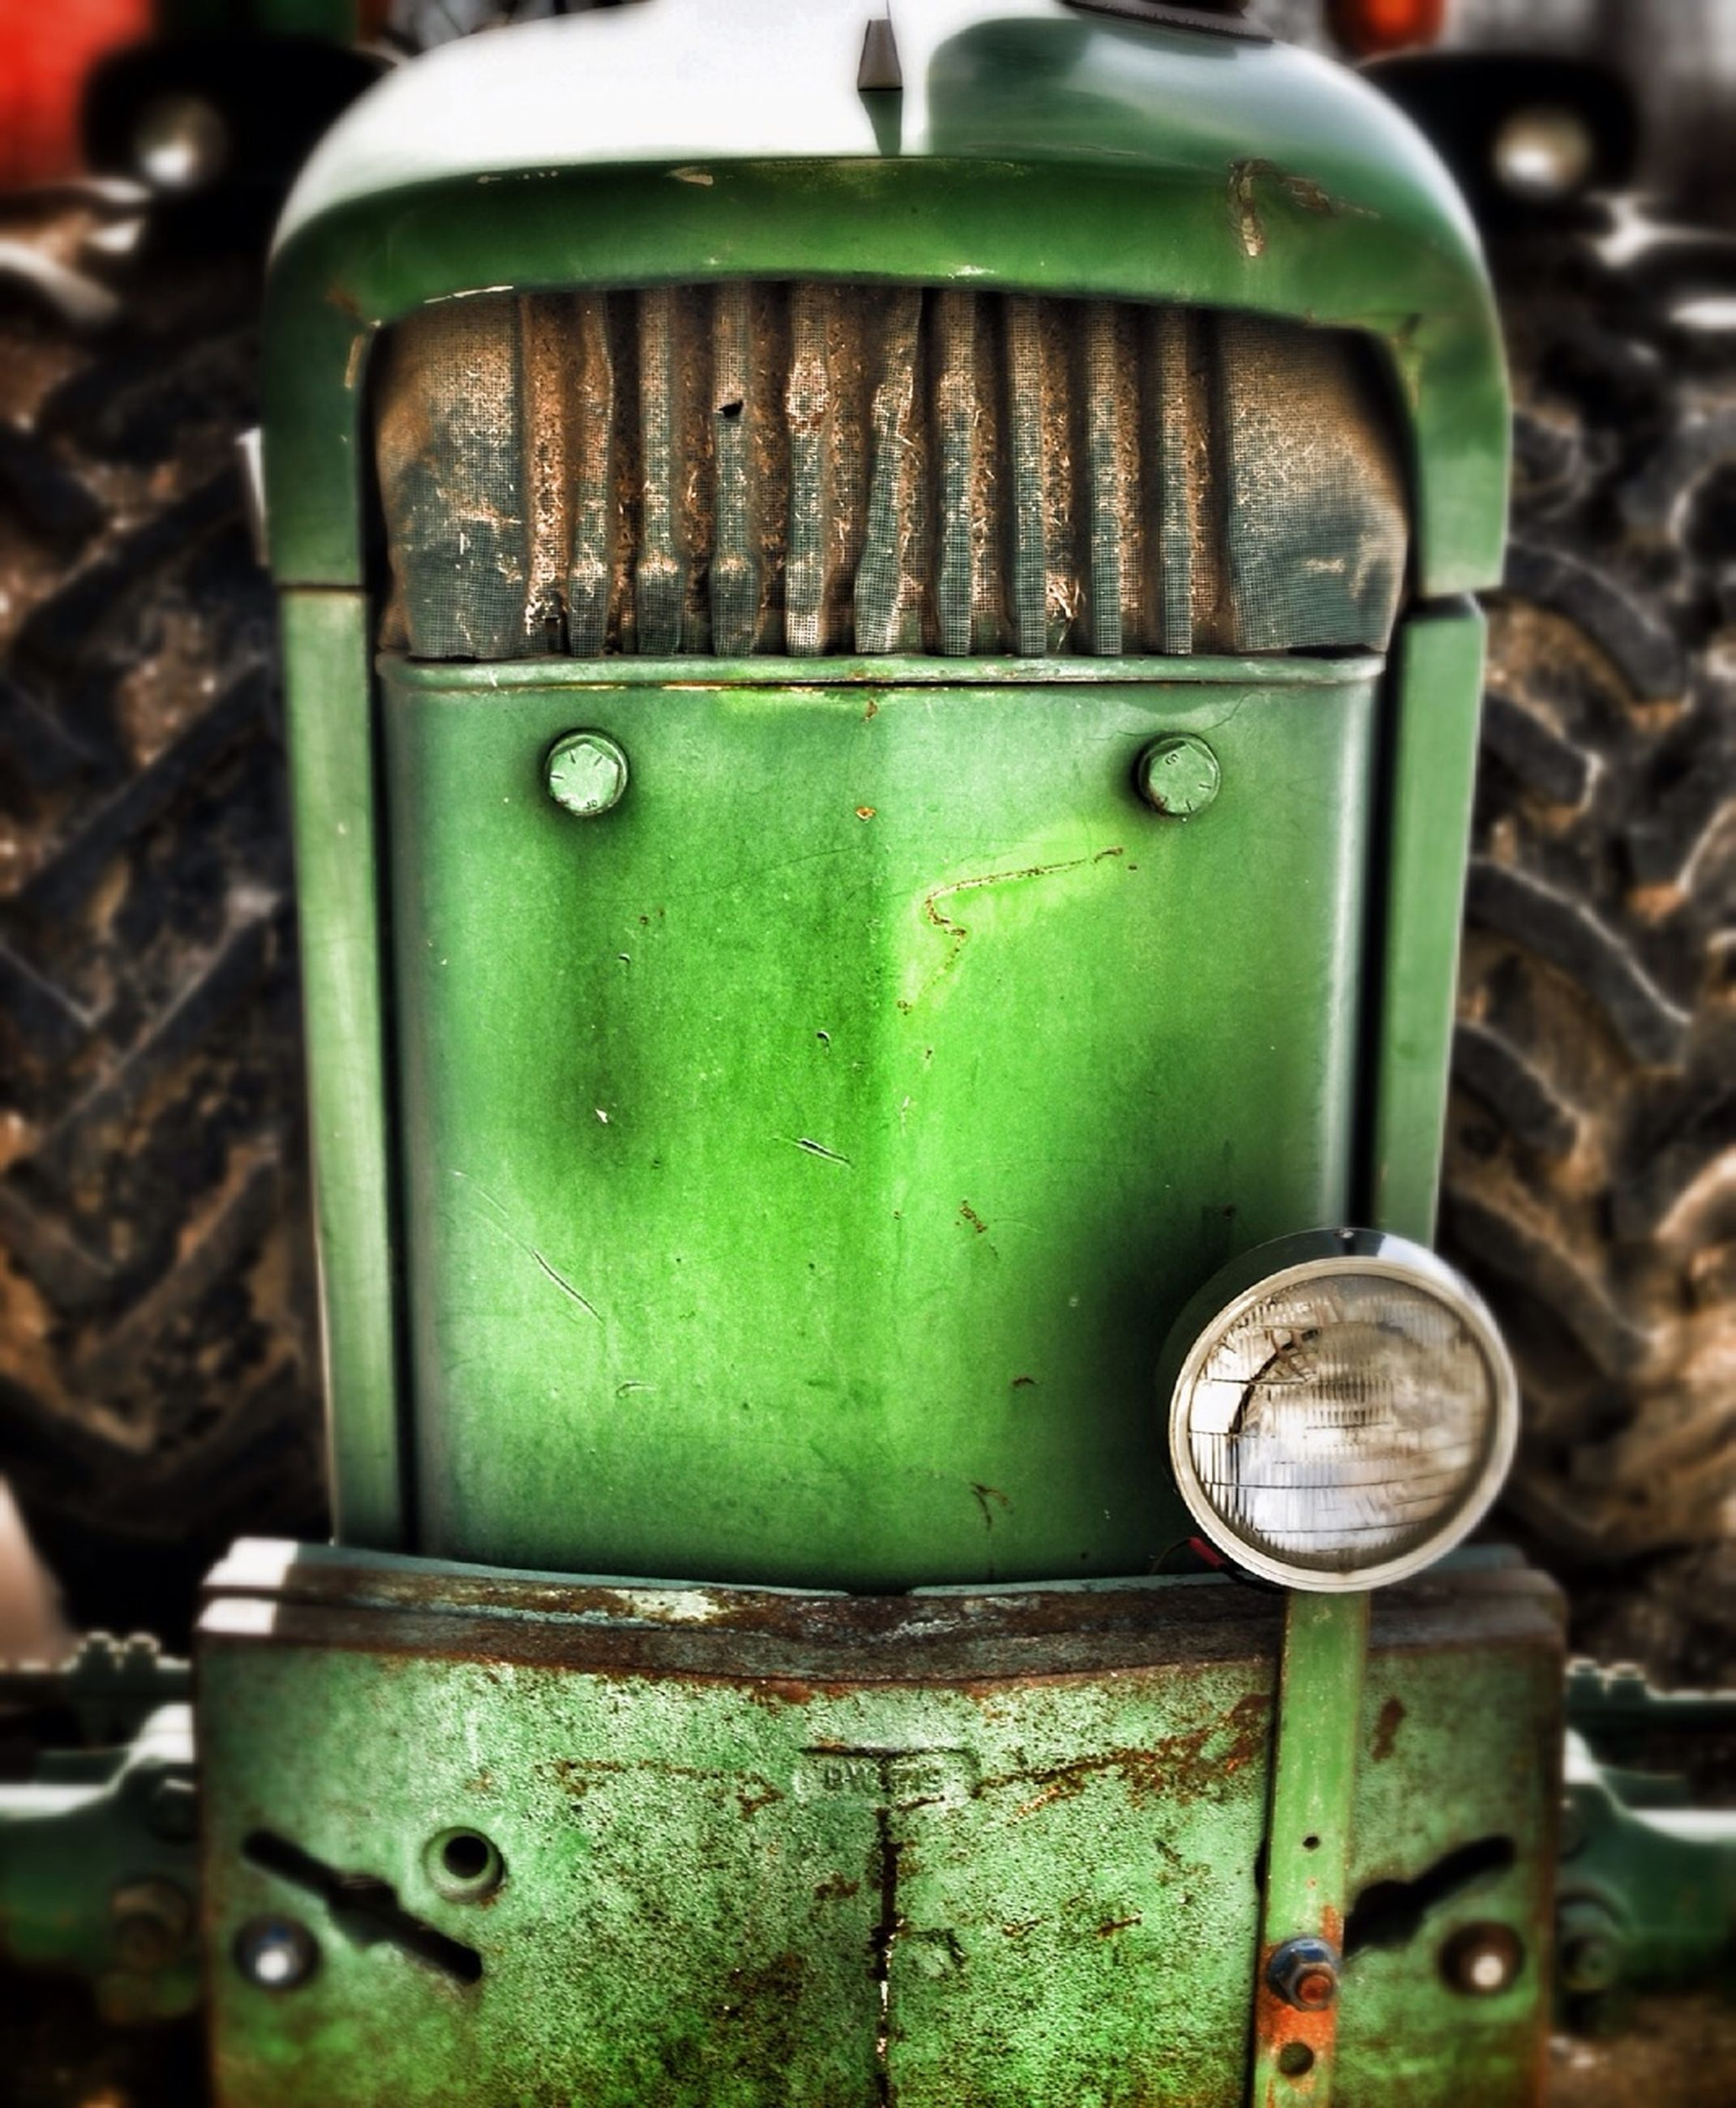 metal, old, rusty, close-up, obsolete, abandoned, old-fashioned, metallic, damaged, deterioration, protection, outdoors, day, green color, run-down, no people, weathered, focus on foreground, security, machinery